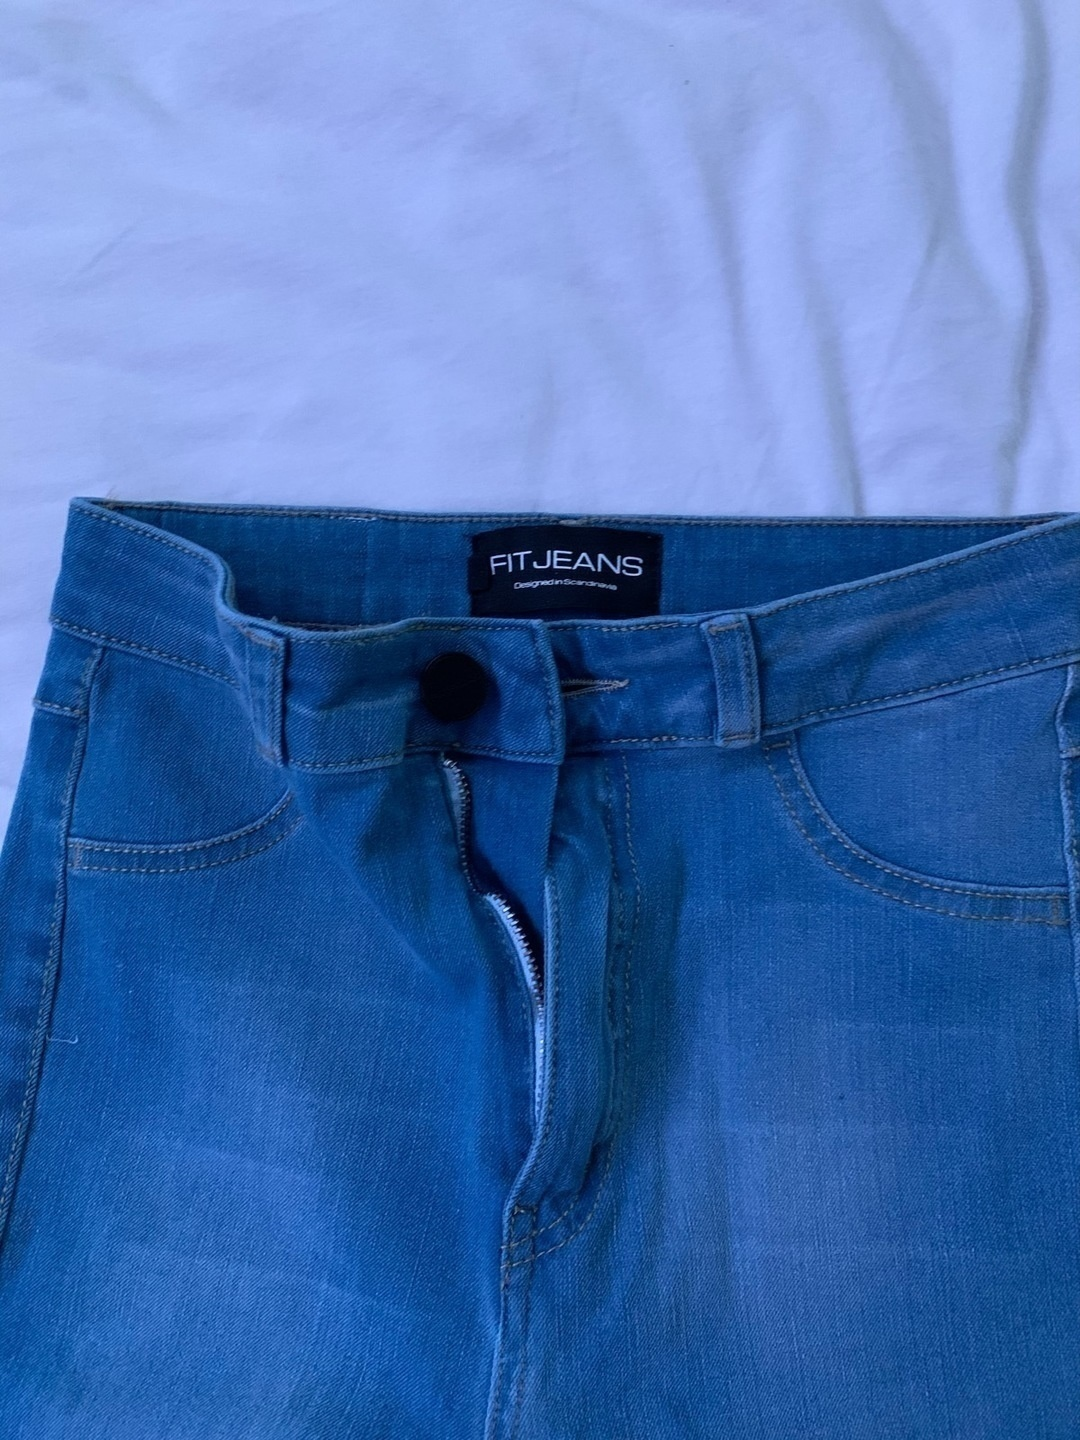 Women's trousers & jeans - FITJEANS photo 3